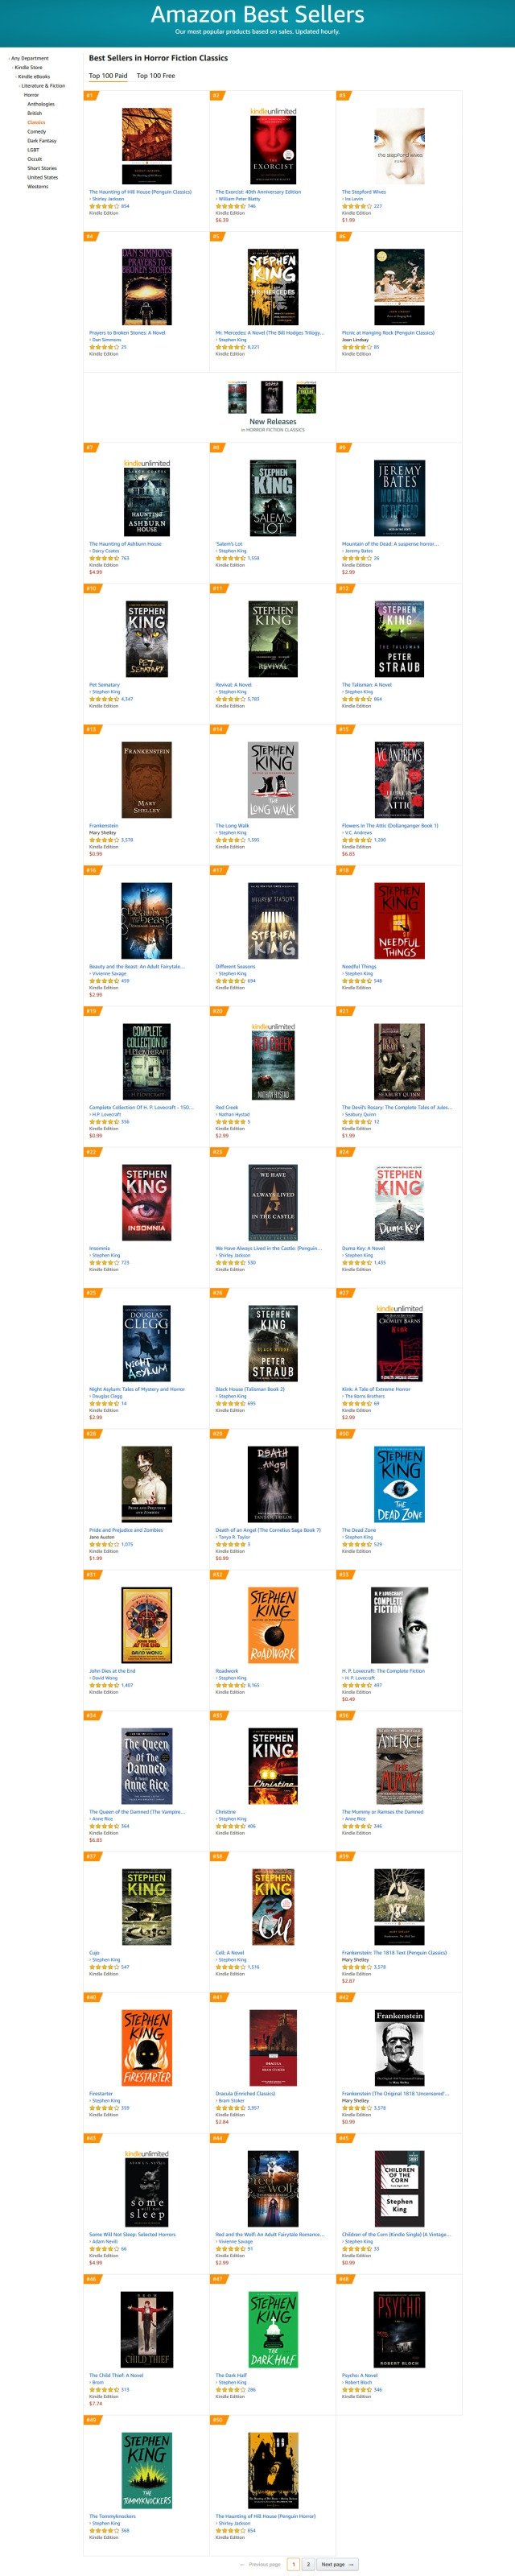 Screenshot-2018-6-6 Amazon Best Sellers Best Horror Fiction Classics